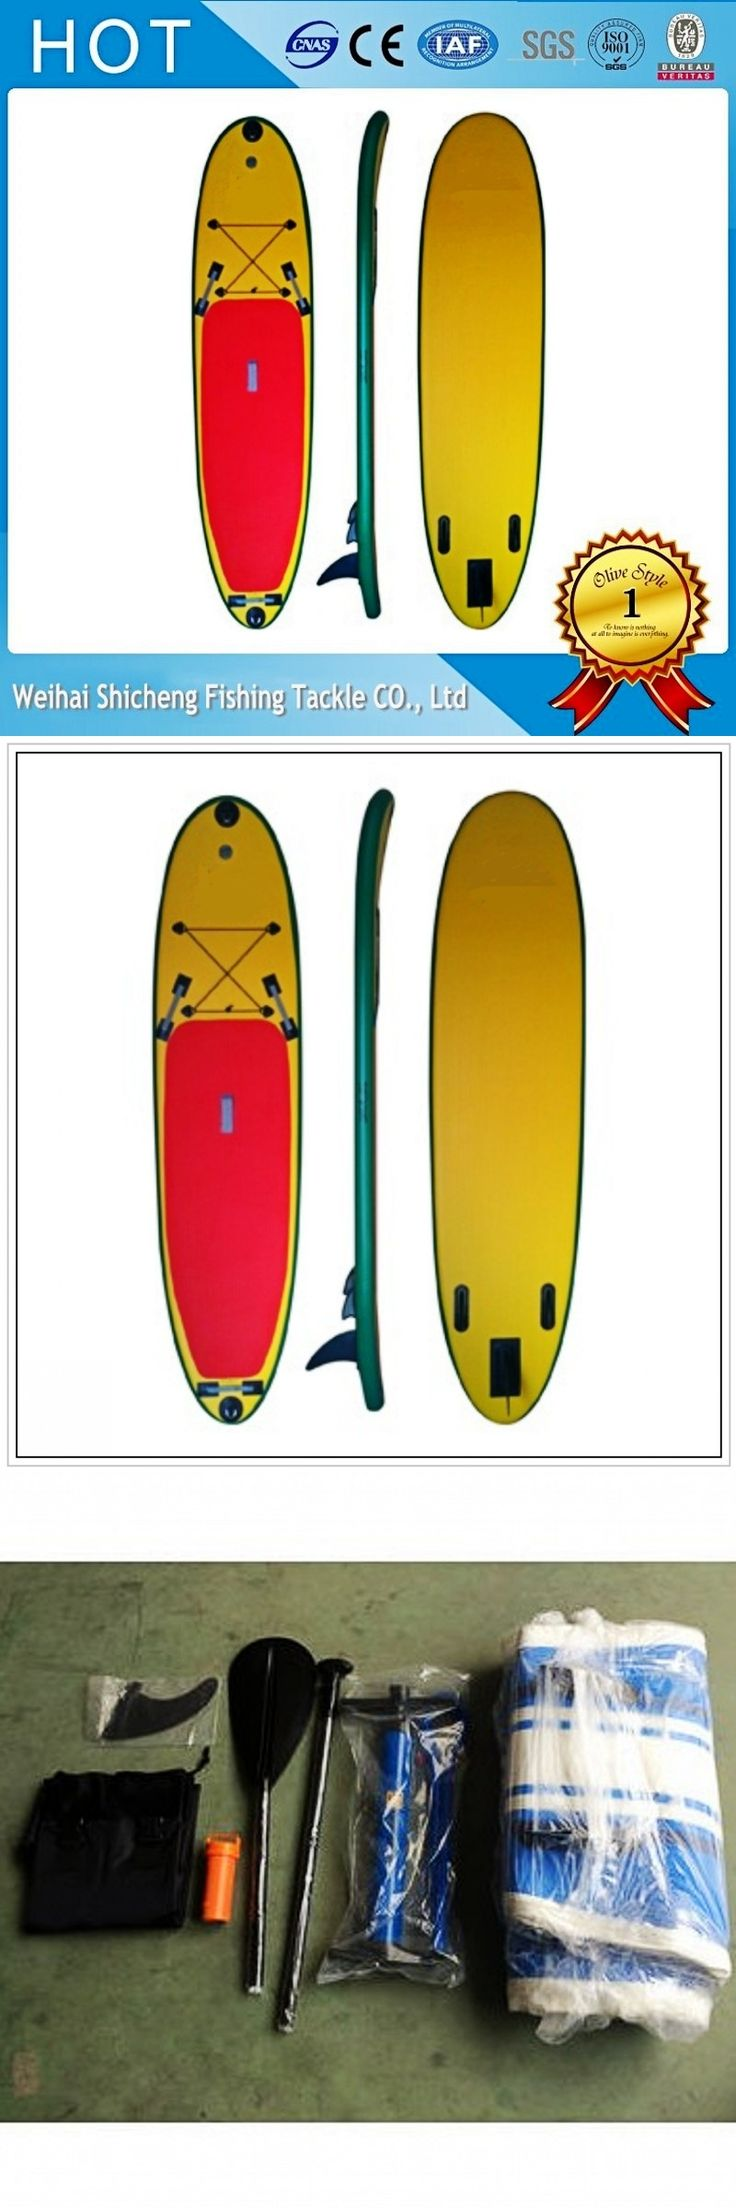 "Best Selling 11'6"" Shicheng Sups 4''thickness Inflatable Sup boards Inflatable Stand up Paddle Board with Standard Accessories"